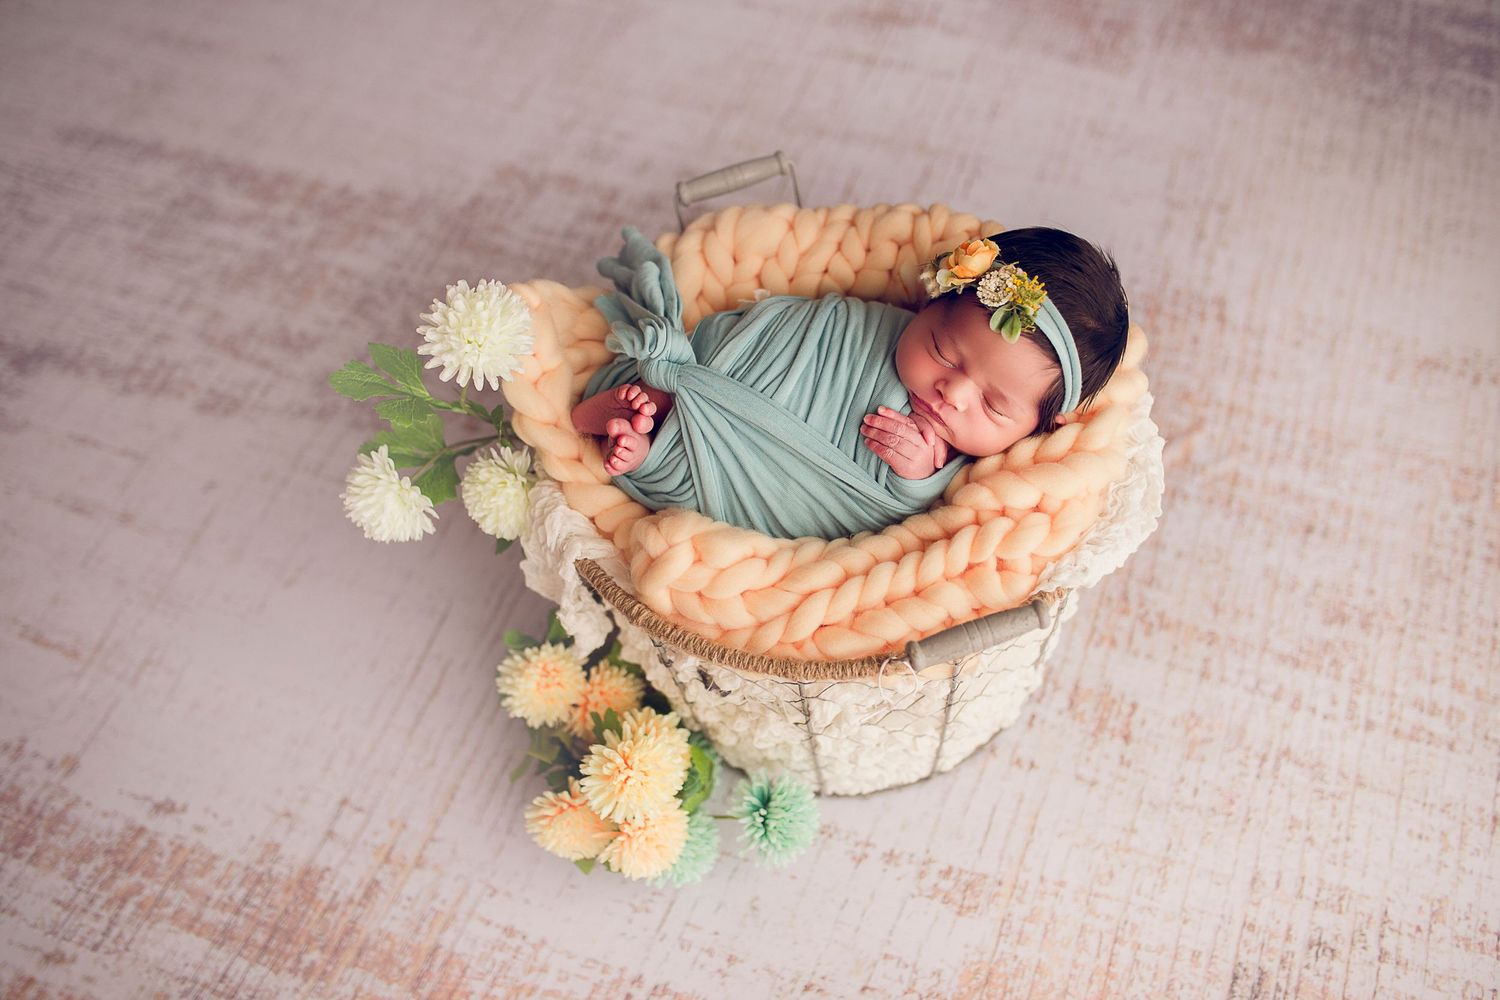 newborn baby girl in a basket wrapped in teal flowers